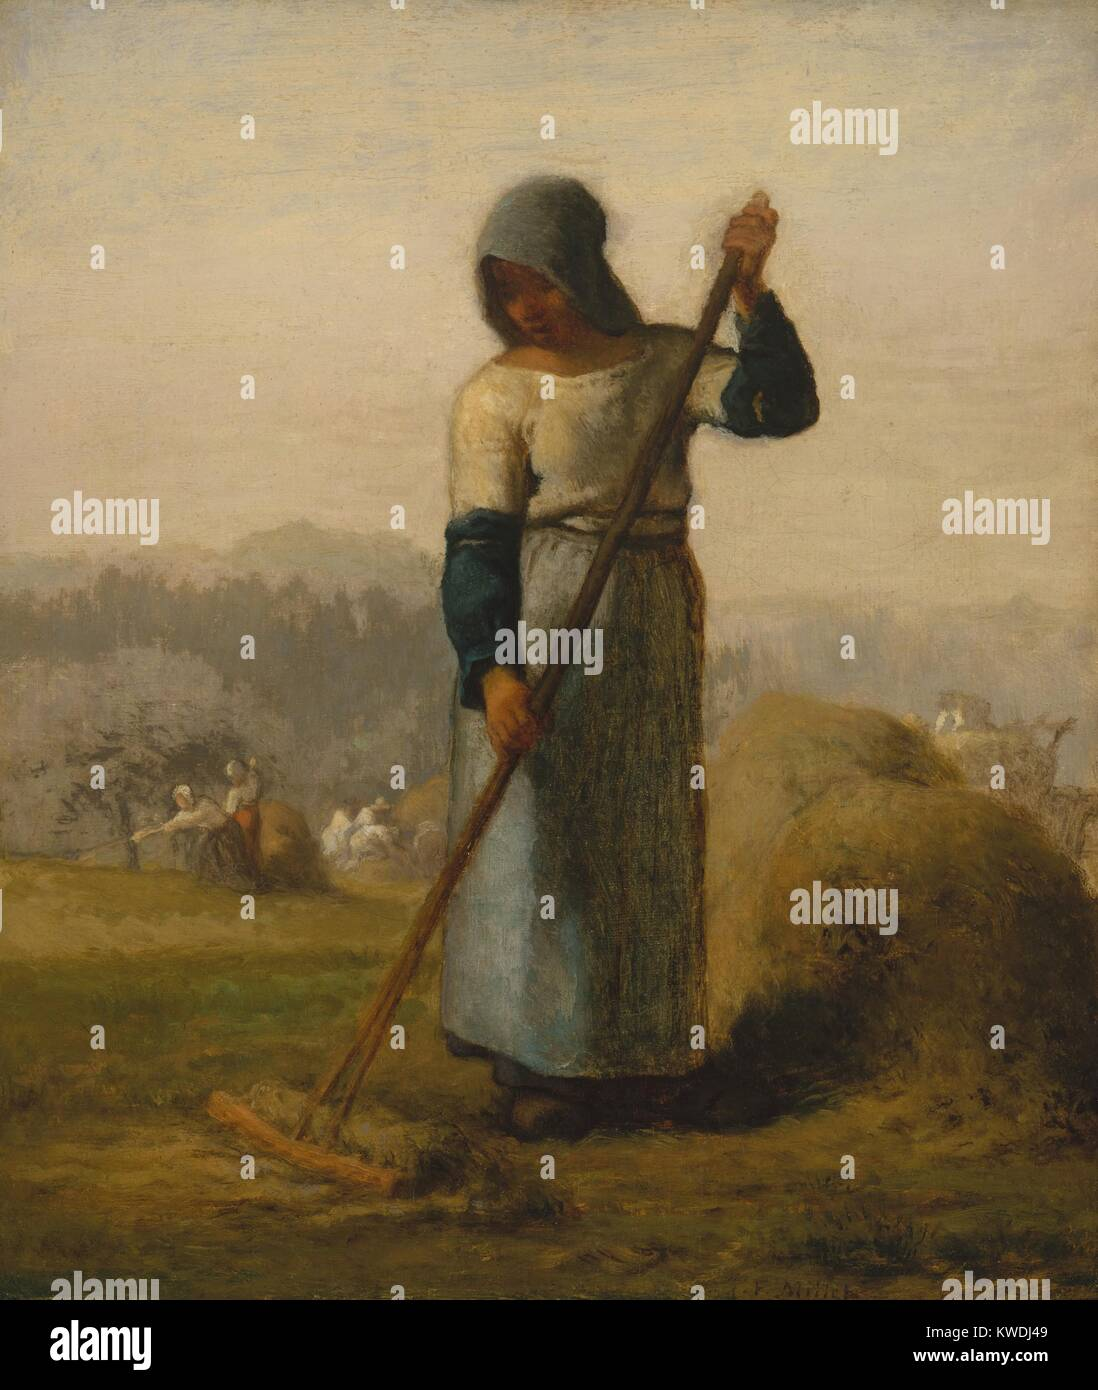 WOMAN WITH A RAKE, by Jean-Francois Millet, 1856-57, French painting, oil on canvas. After 20 years as portrait - Stock Image